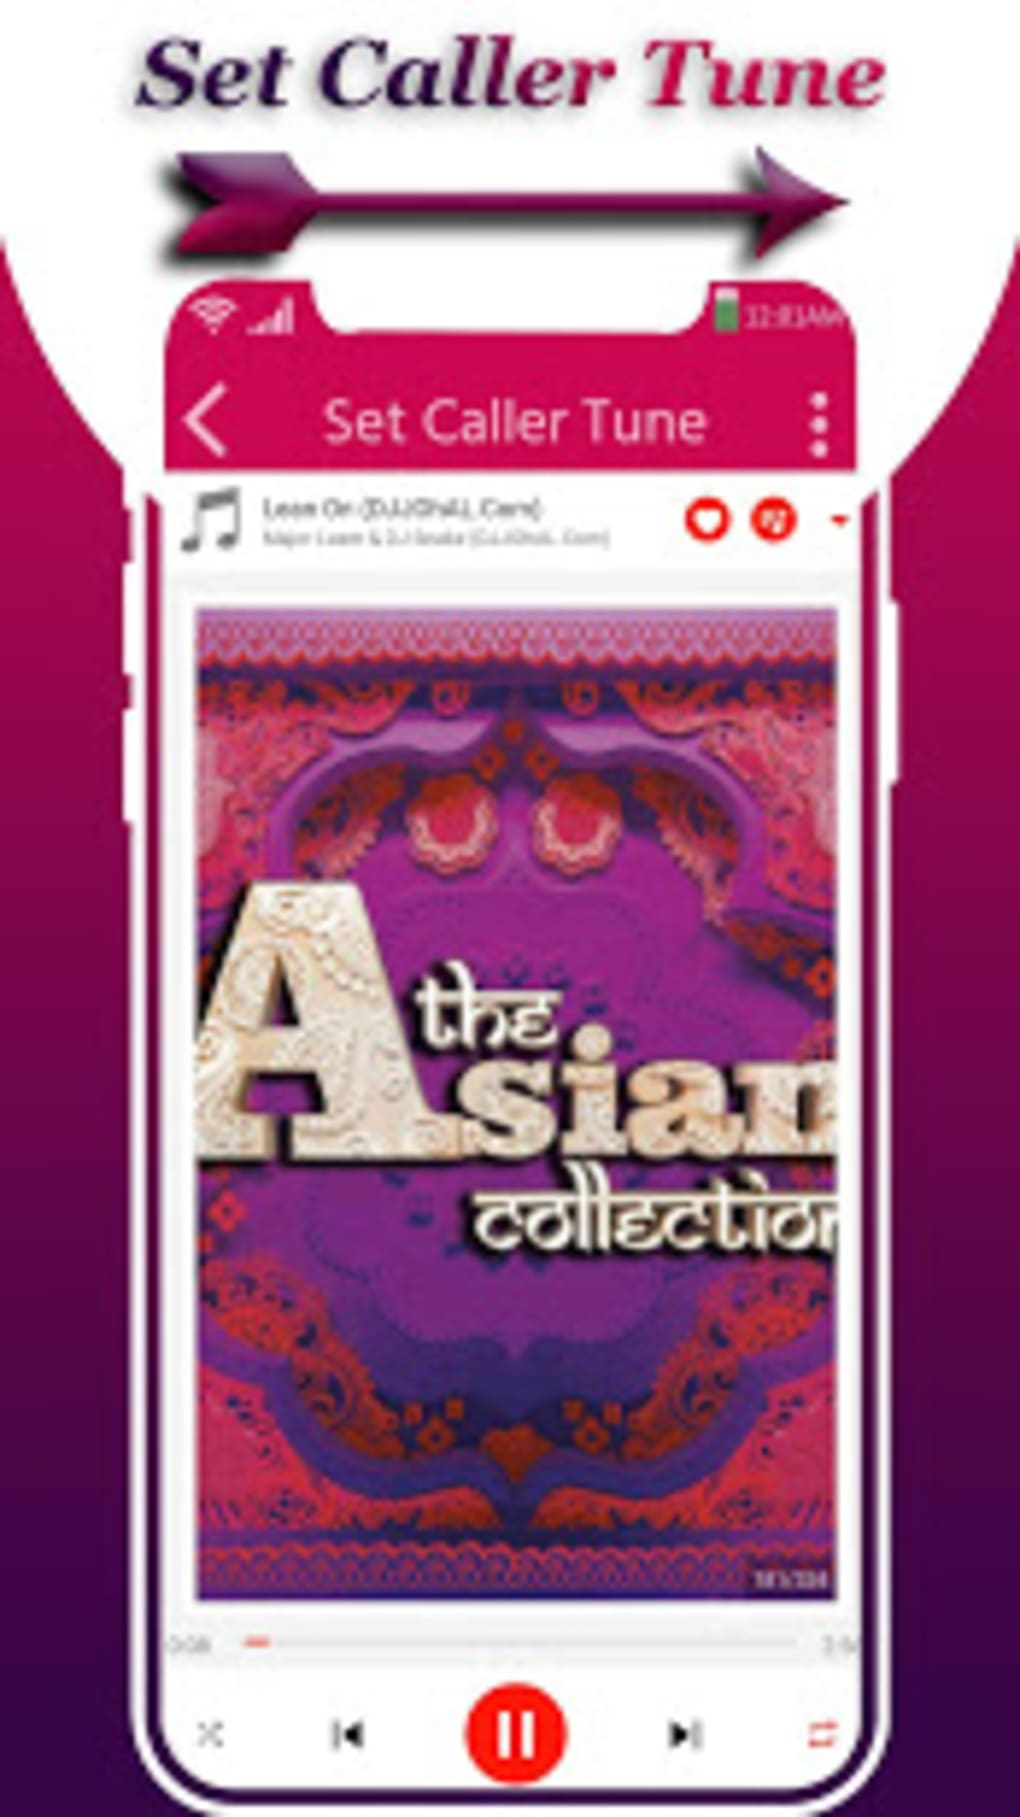 Set Caller Tune - New Ringtone 2019 for Android - Download